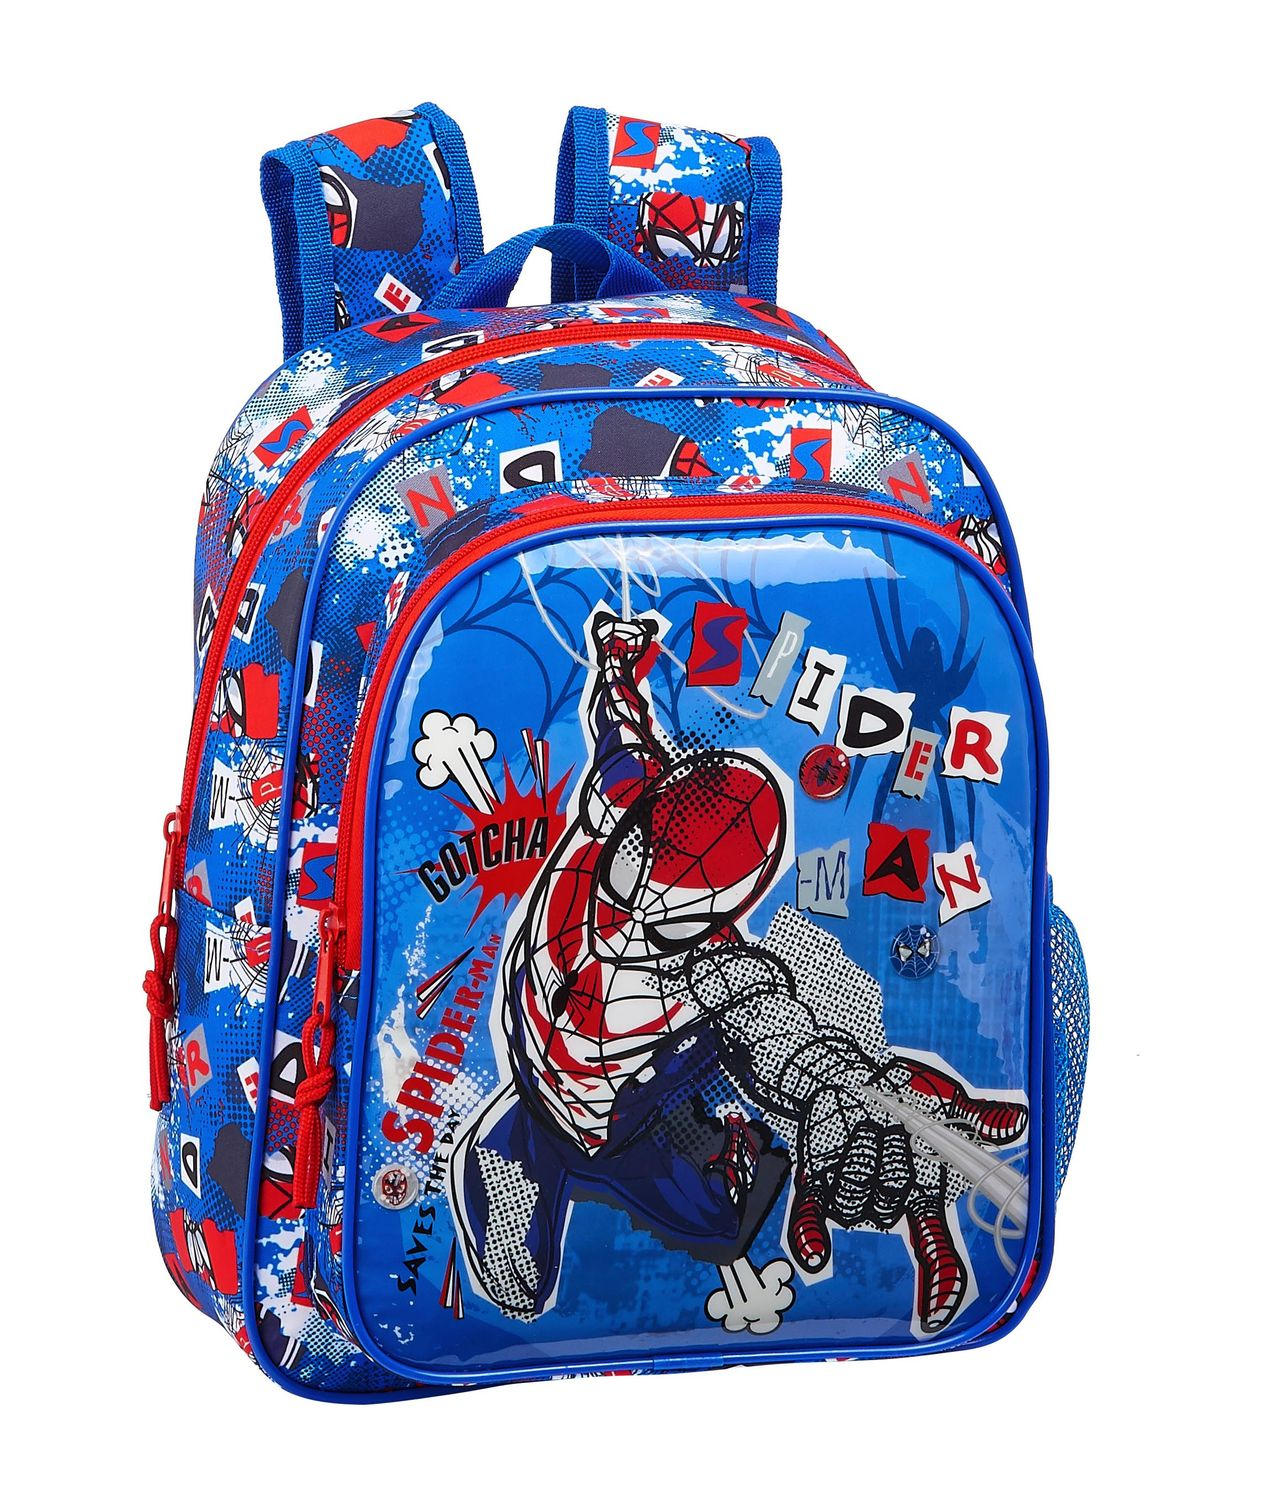 SPIDERMAN PERSPECTIVE Backpack Rucksack 34cm  – image 1